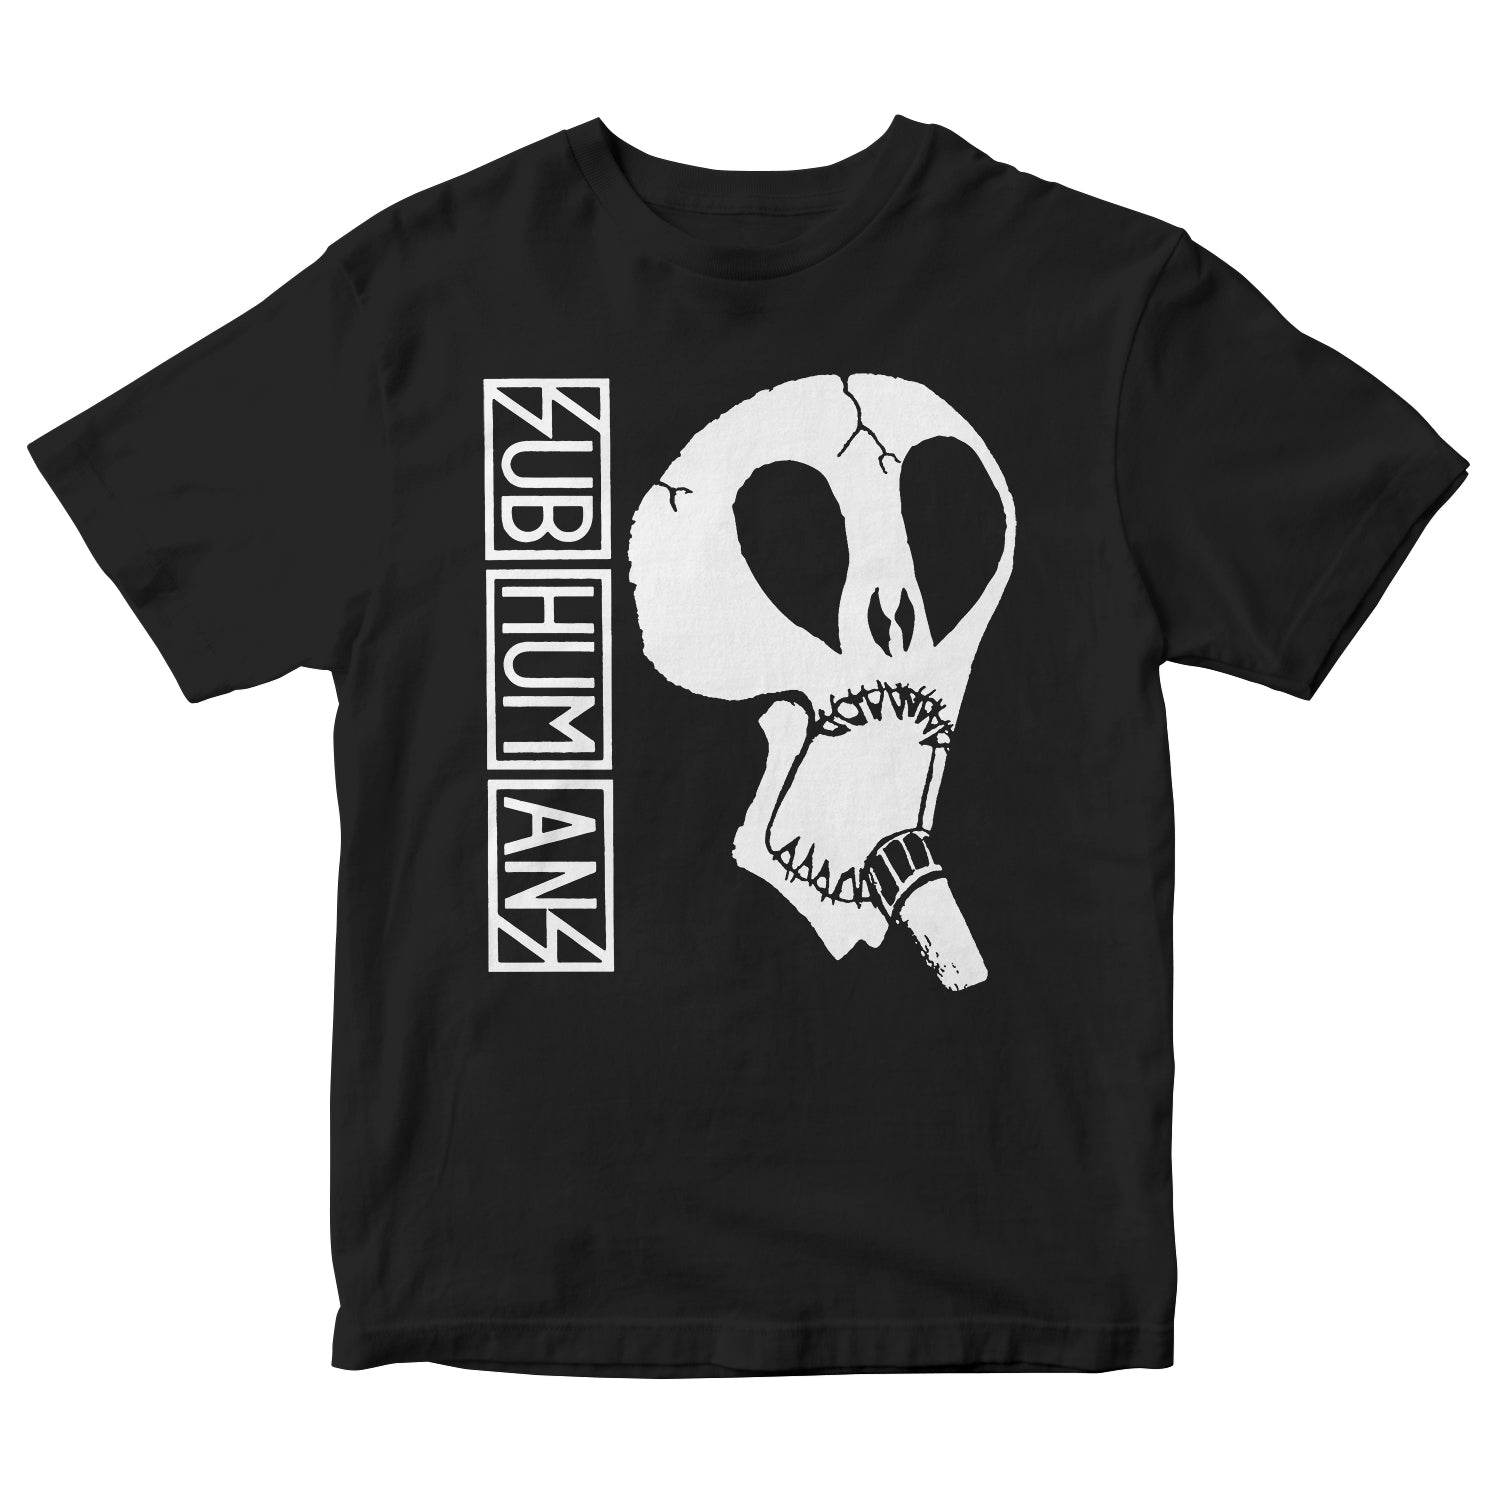 Subhumans - Large Skull & Vertical Logo - Black - T-shirt